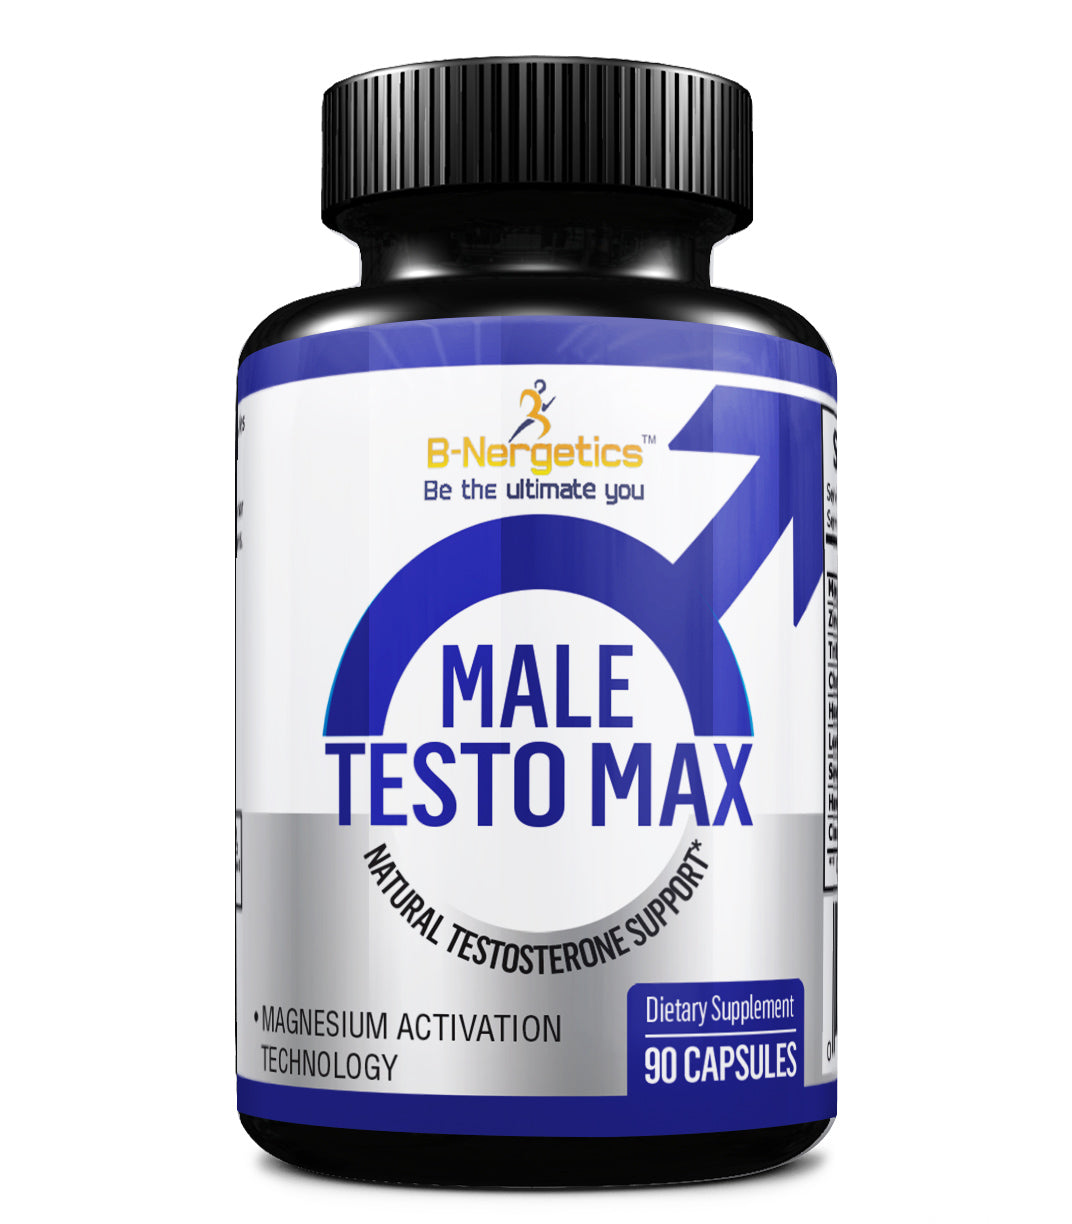 Male Testo Max Supplement - b-nergetics.com